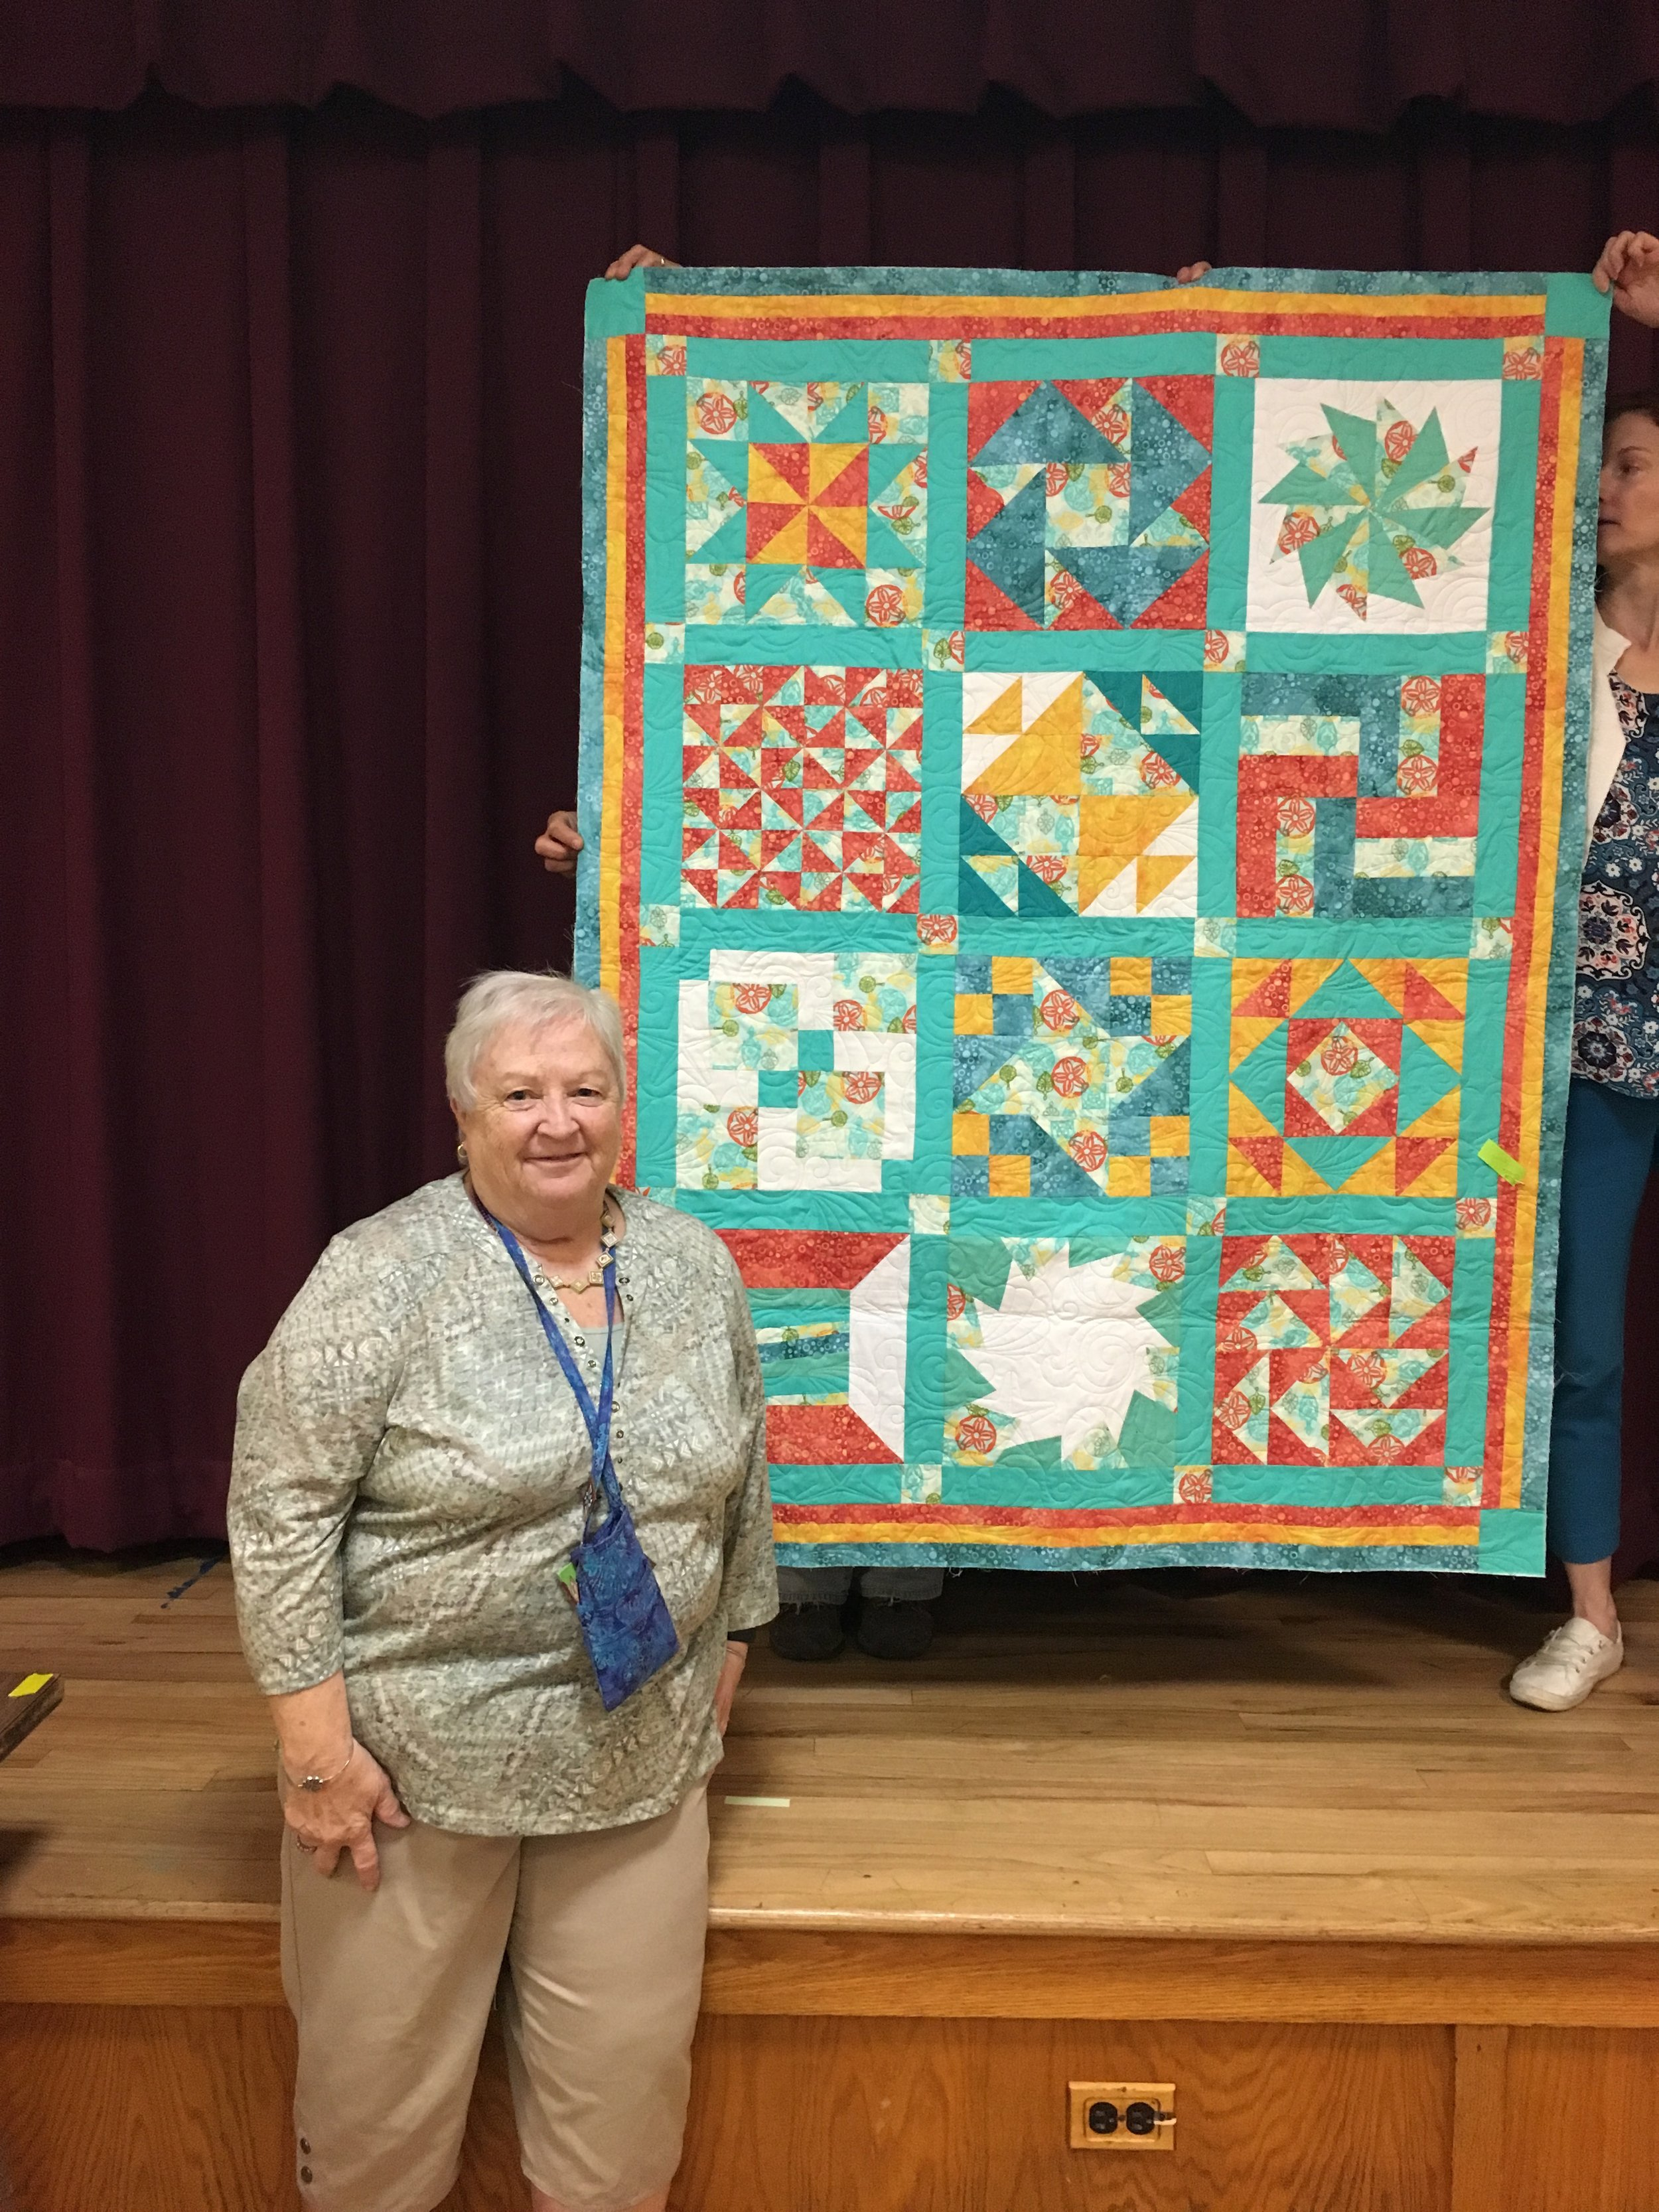 Pizza Box quilt by Kathy Clarke